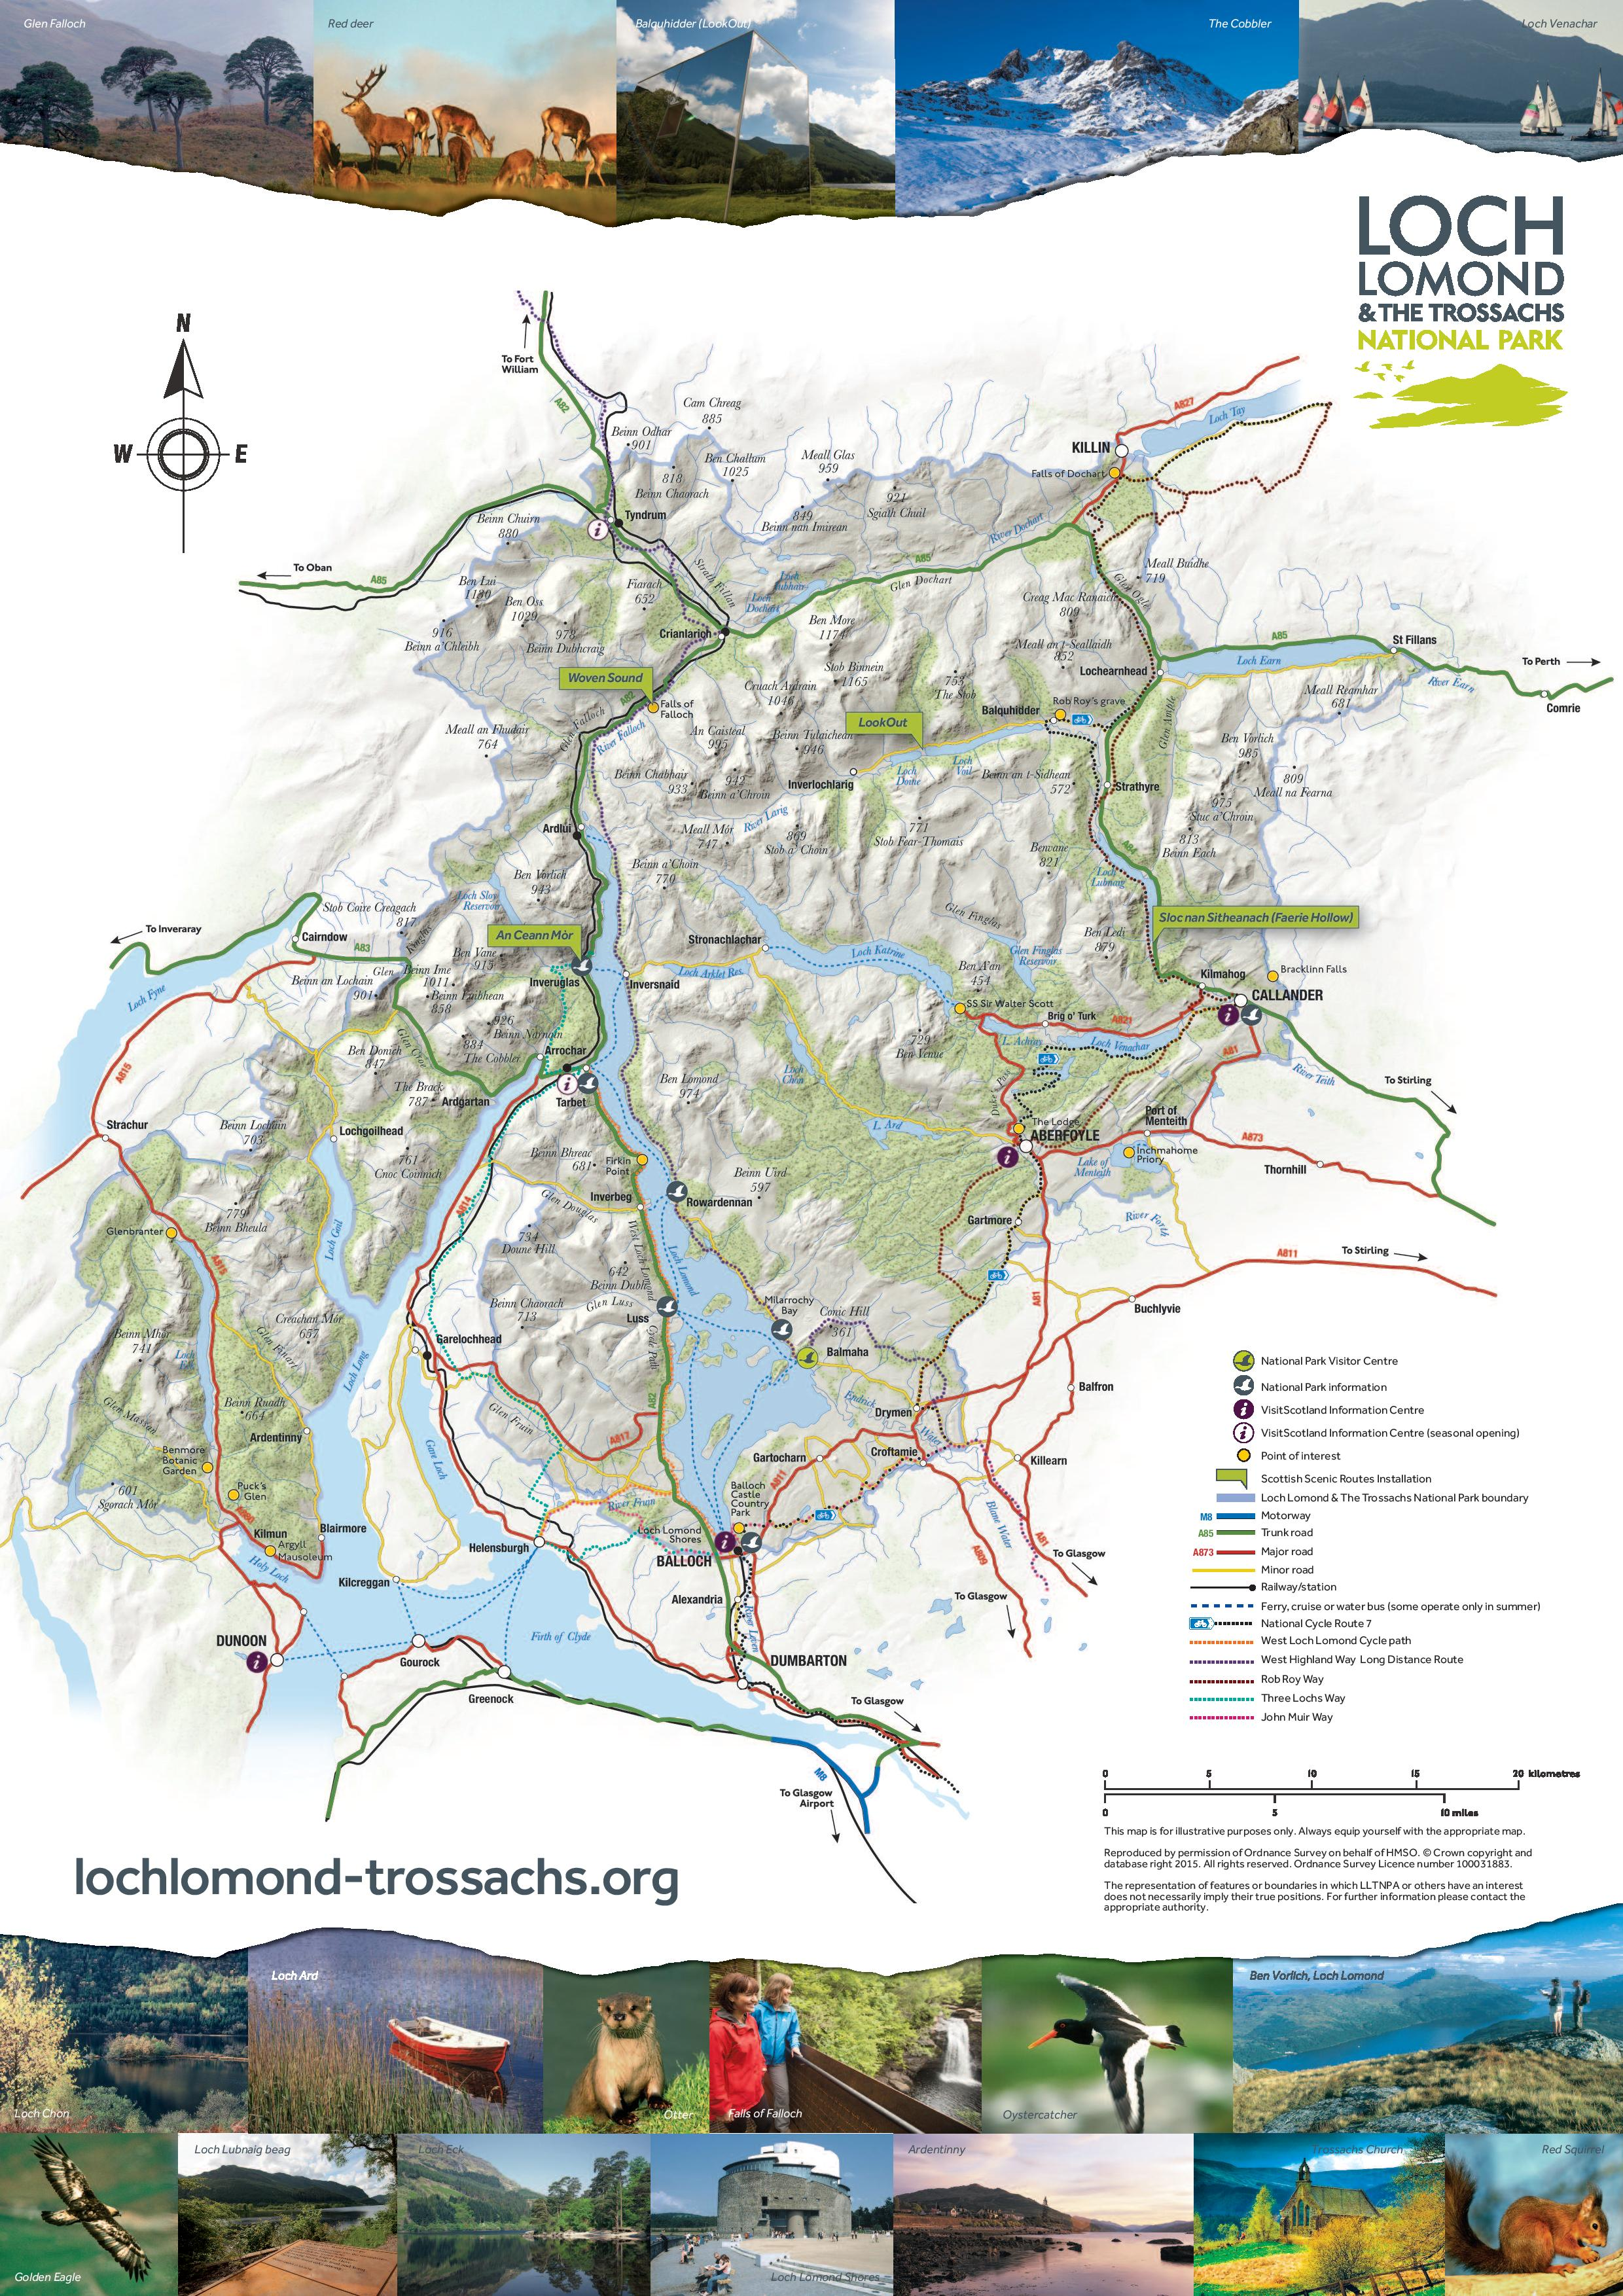 Map of Loch Lomond and the Trossachs National Park